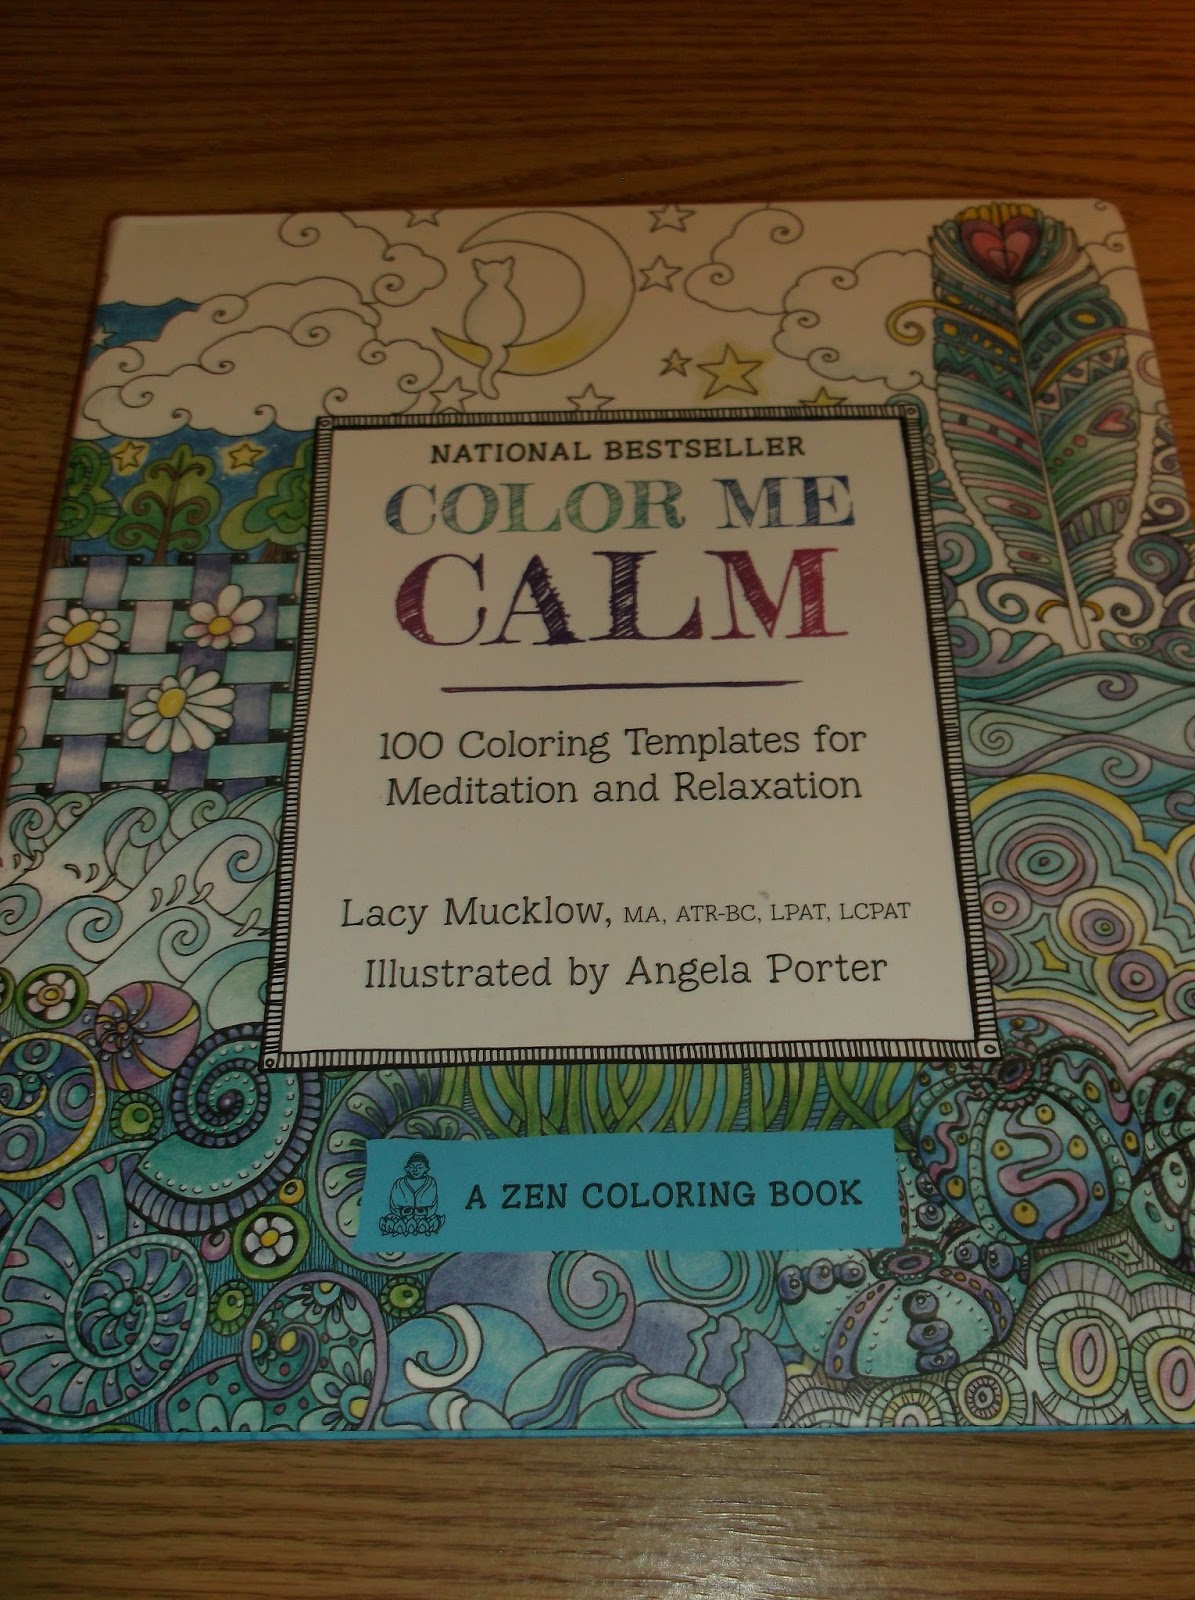 Color Me Calm Lucy Mucklow And Illustrated By Angela Porter Holiday Gift Guide 2015